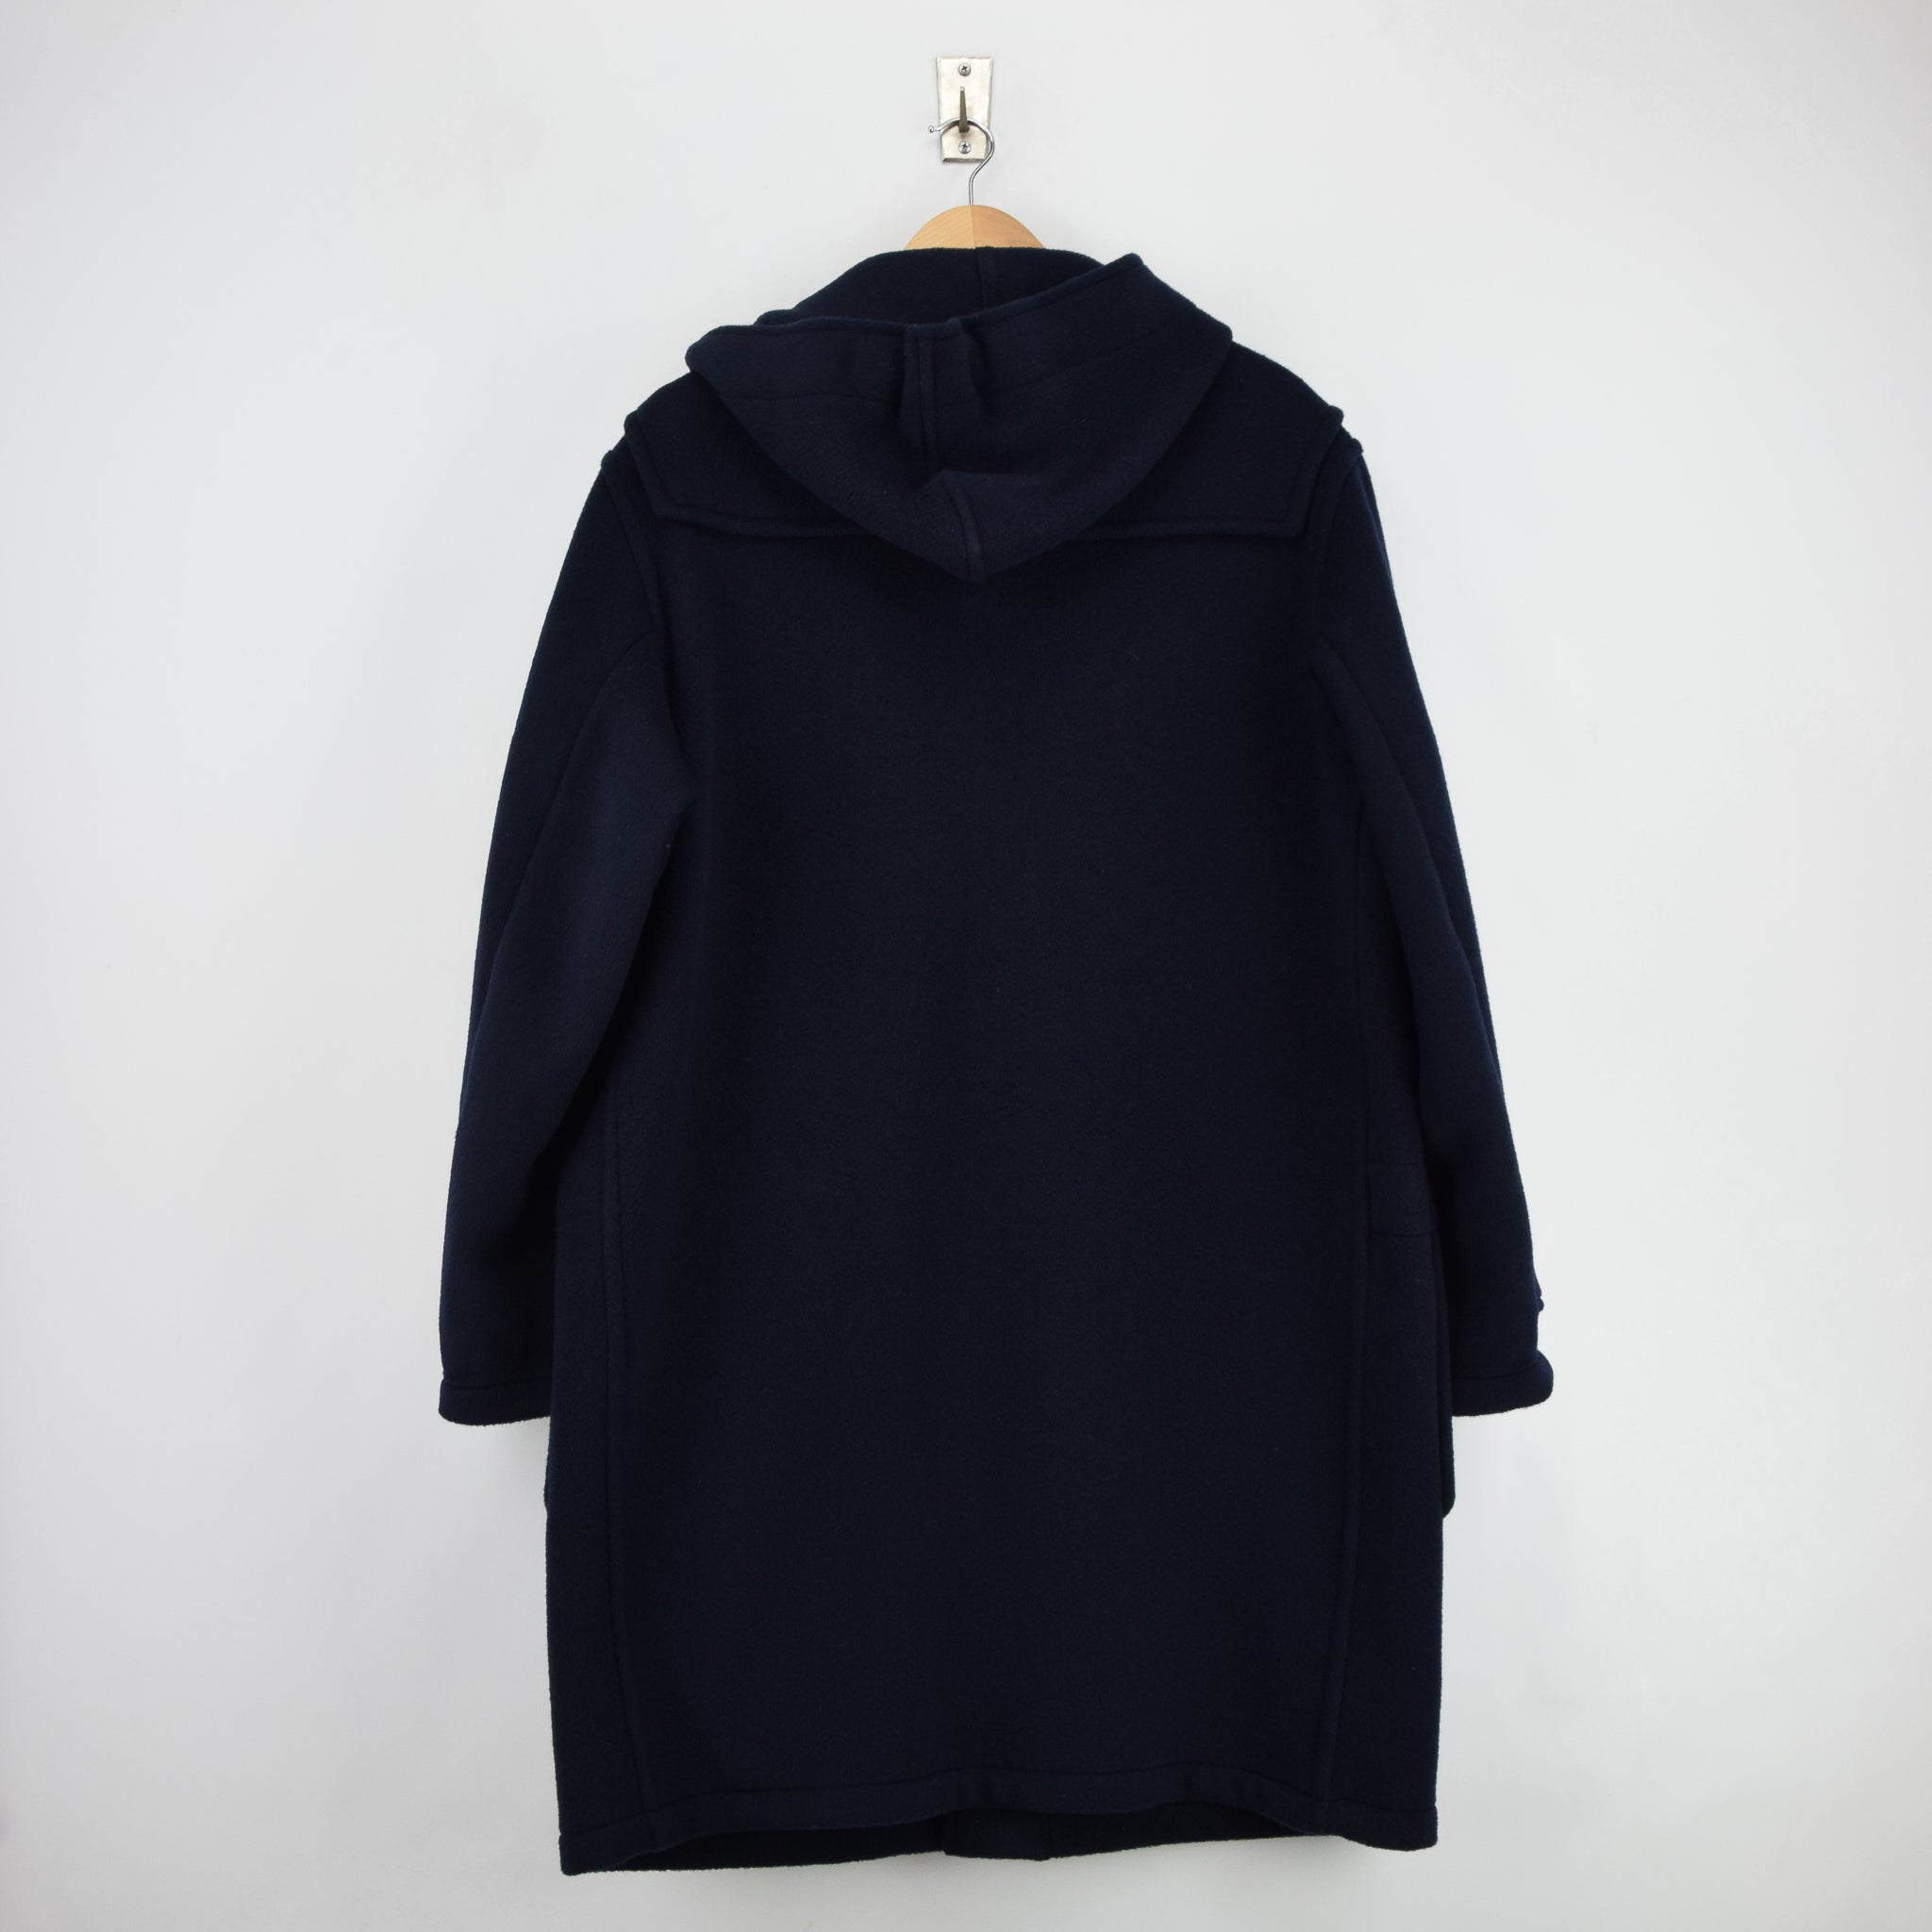 Vintage Gloverall Navy Blue Hooded Duffle Coat Jacket Made in England L / XL back